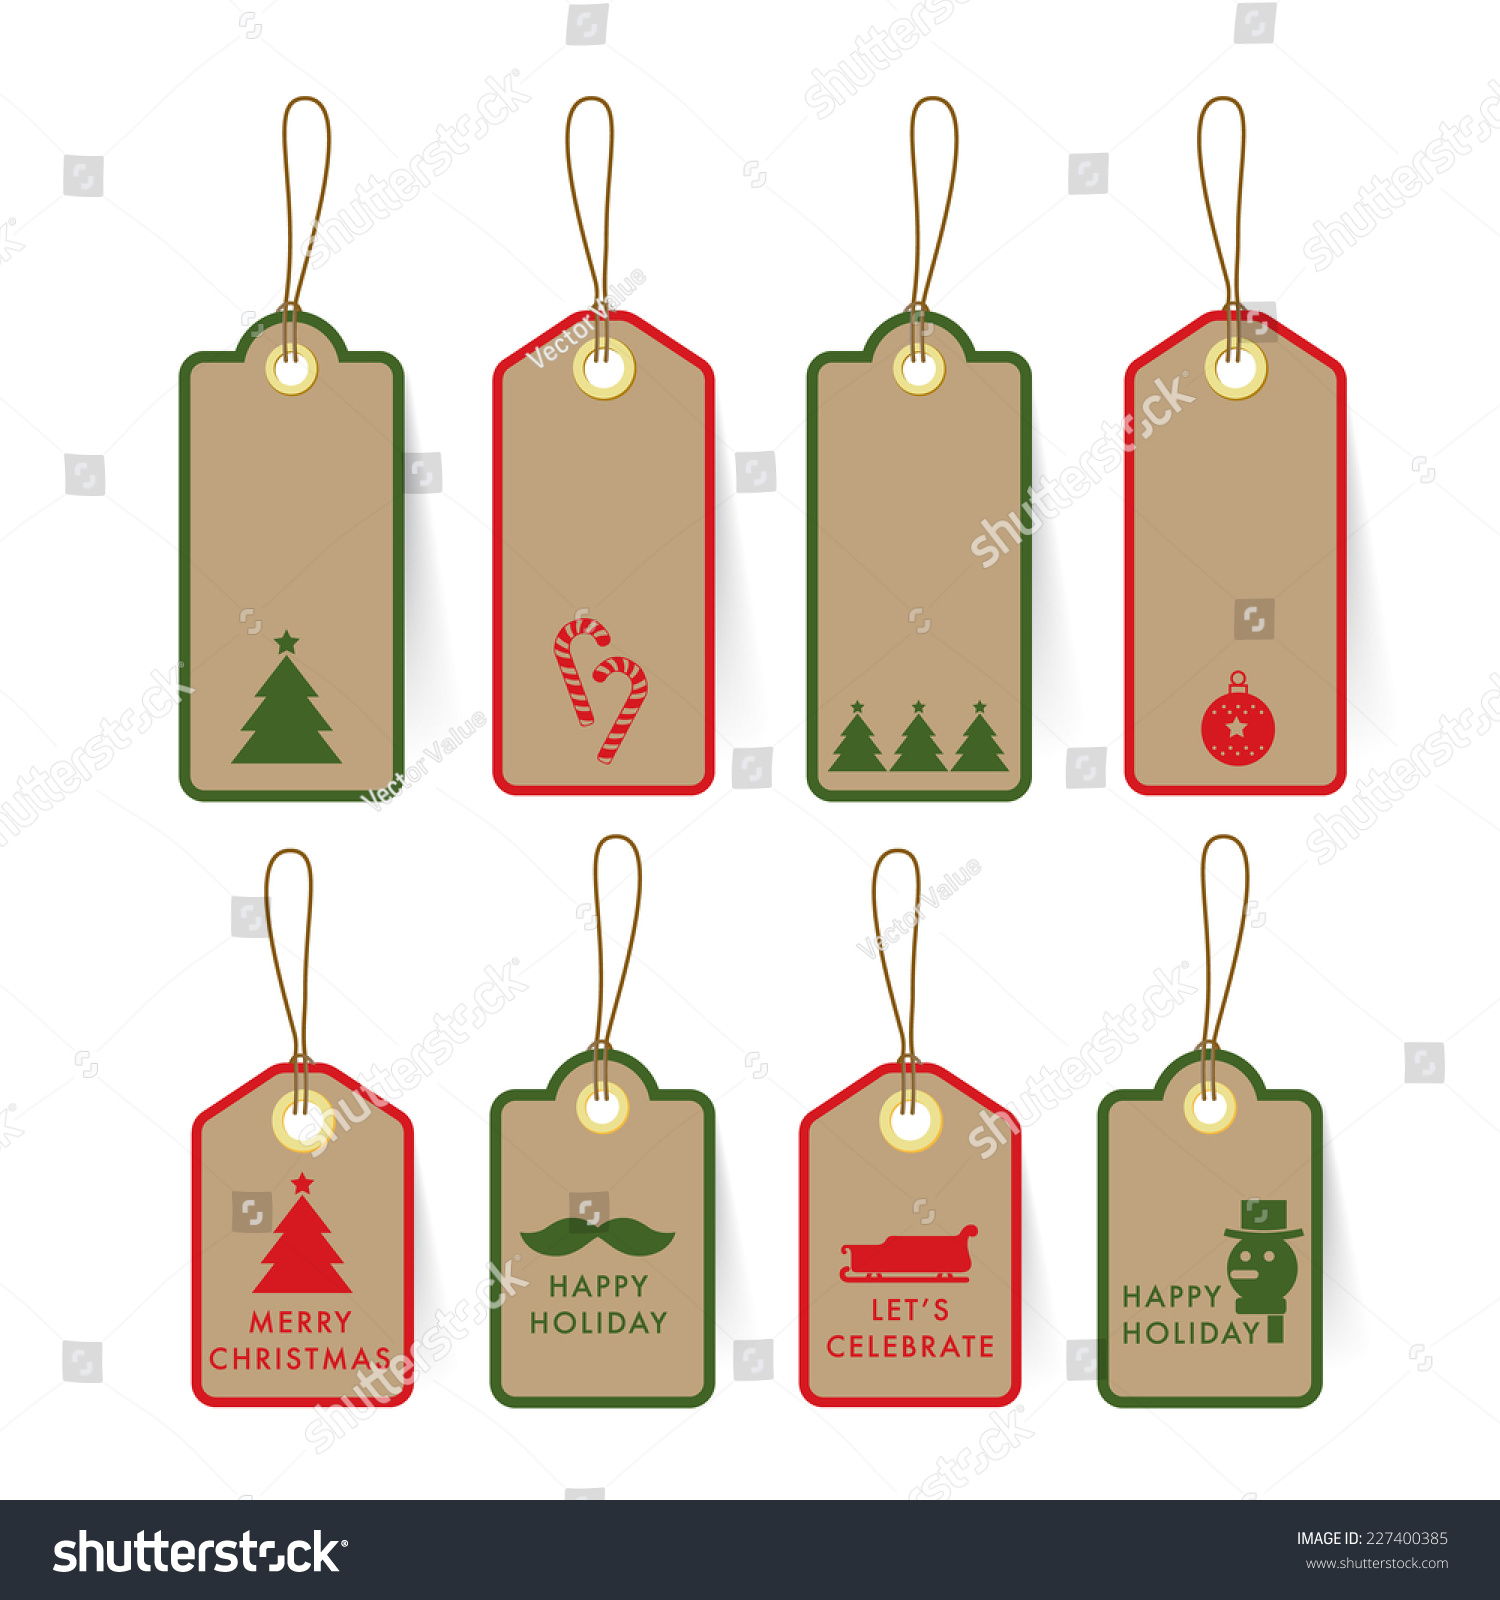 collection christmas card tag label on stock vector  collection of christmas card tag and label on paper element and text design template